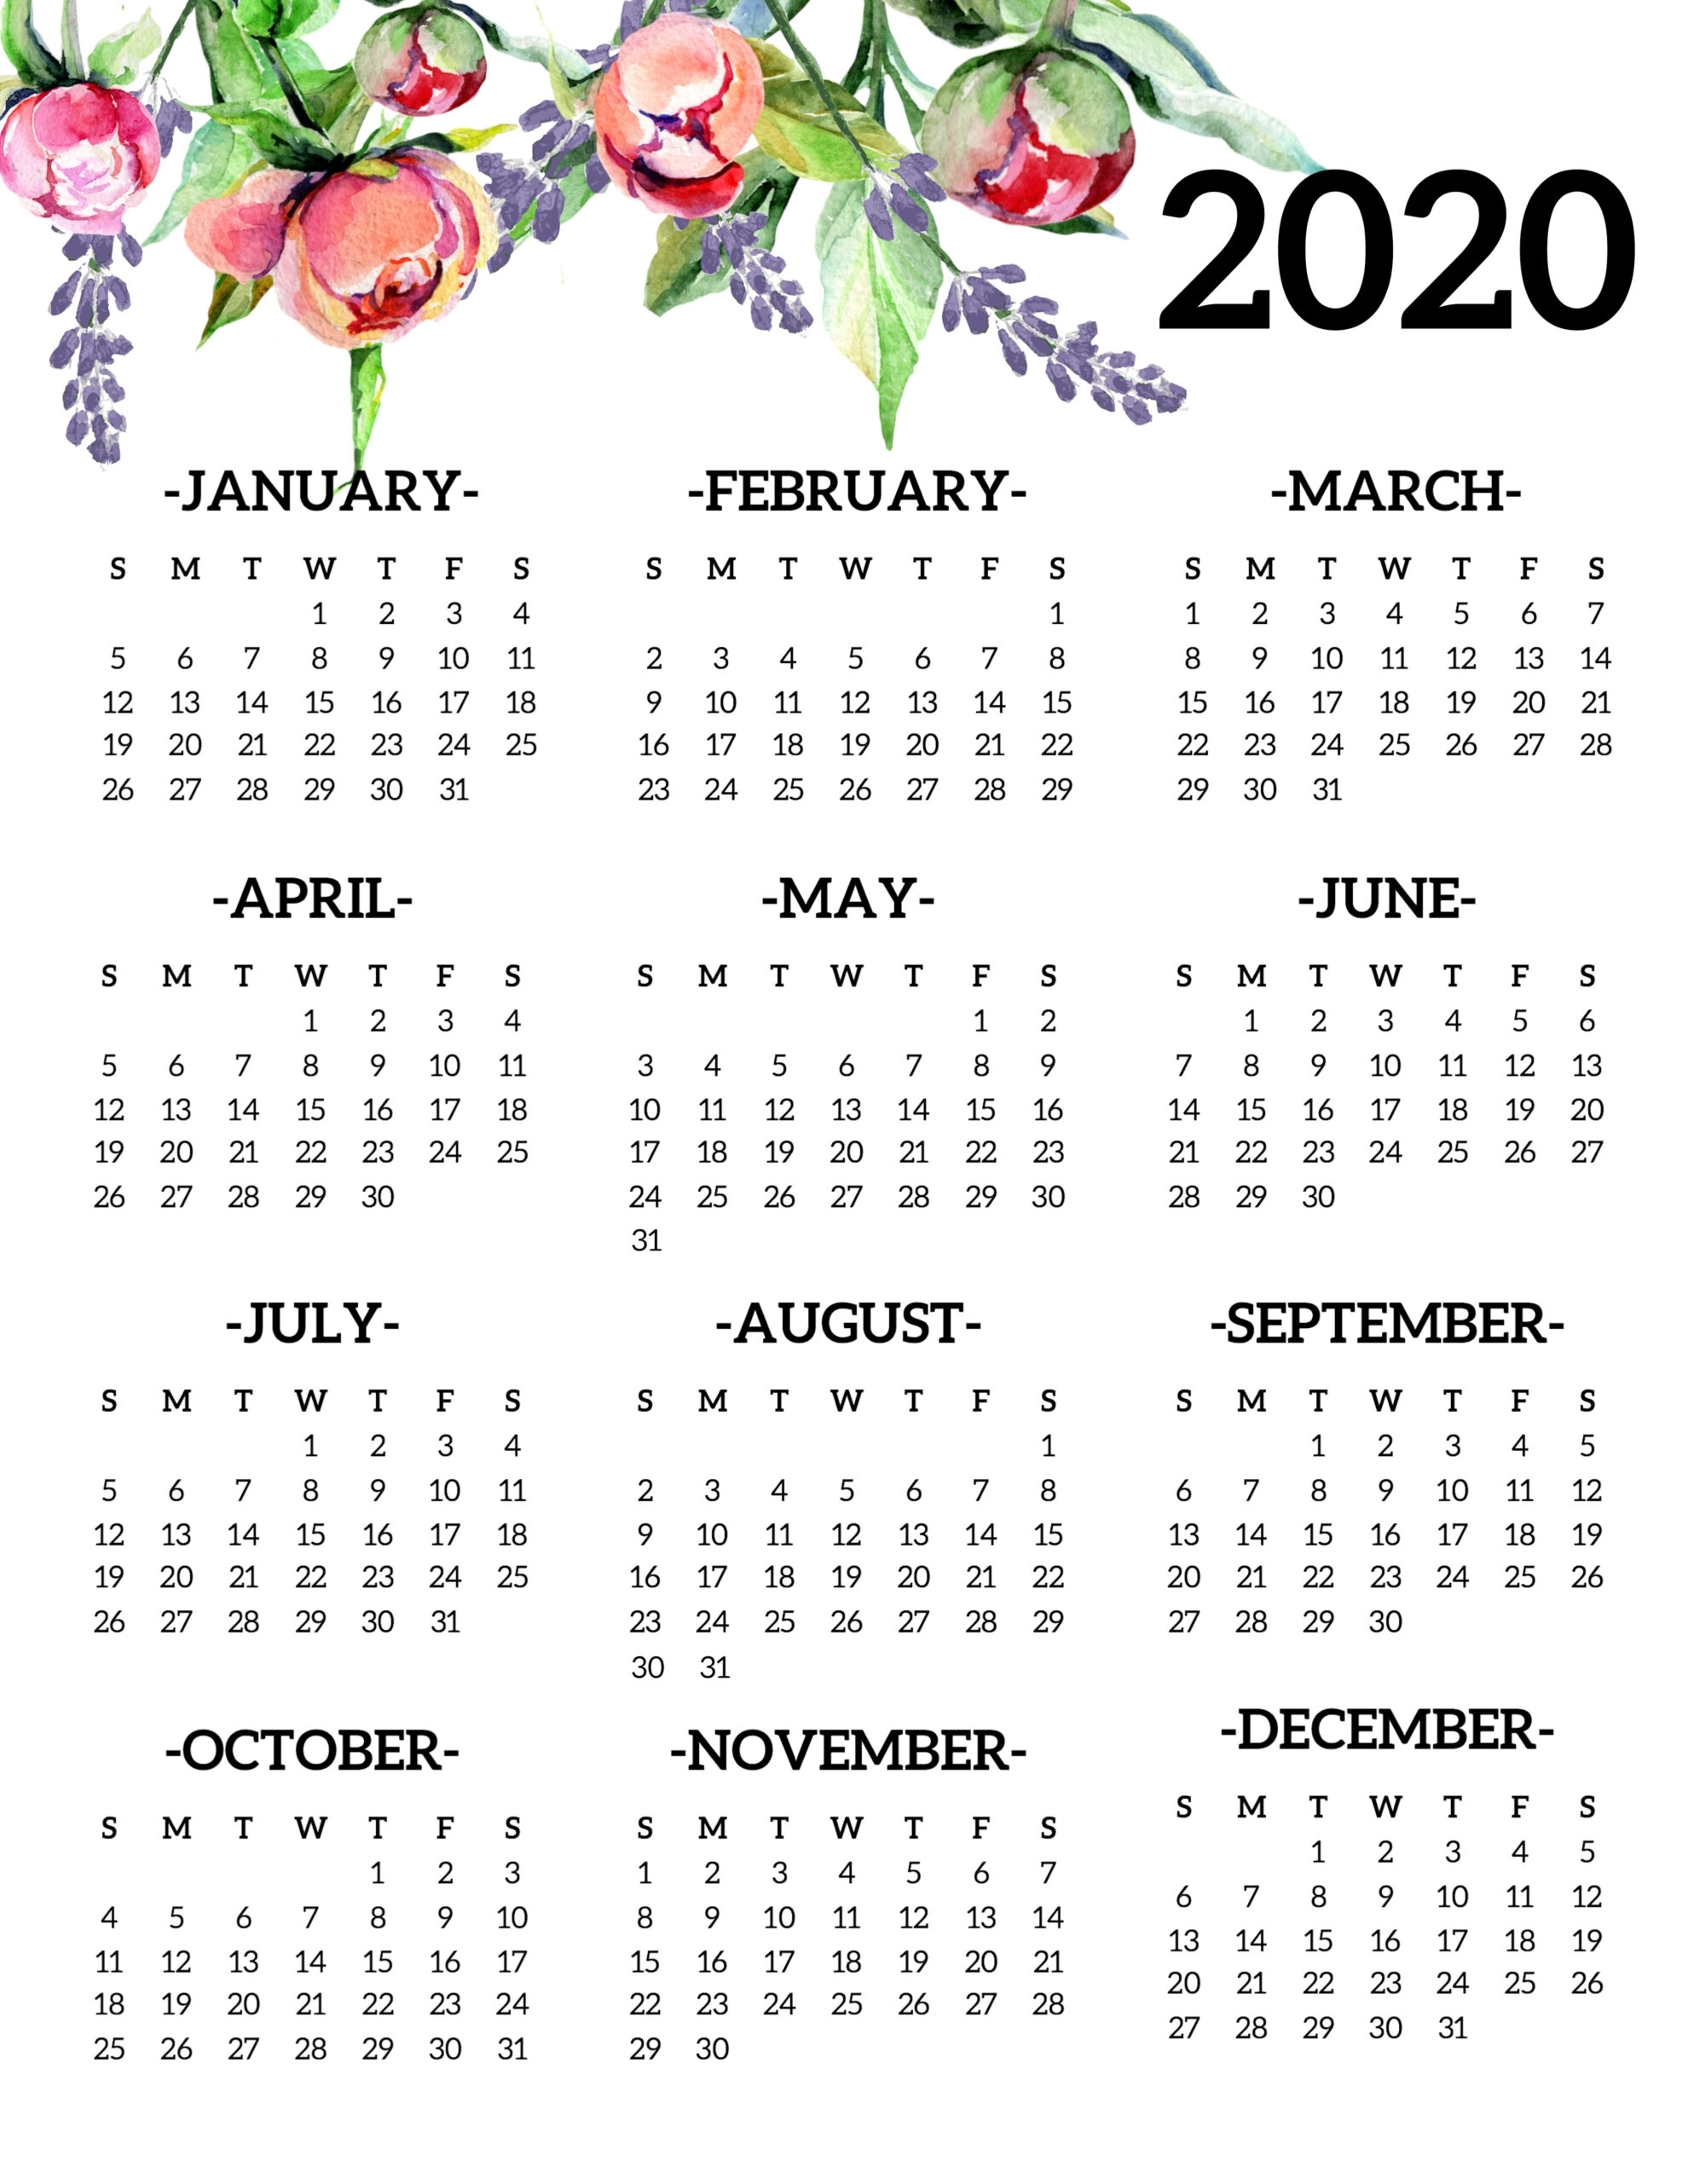 Free Printable 2020 Calendar Yearly One Page Floral - Paper regarding 2020 Free Printable Calendars Without Downloading At A Glance